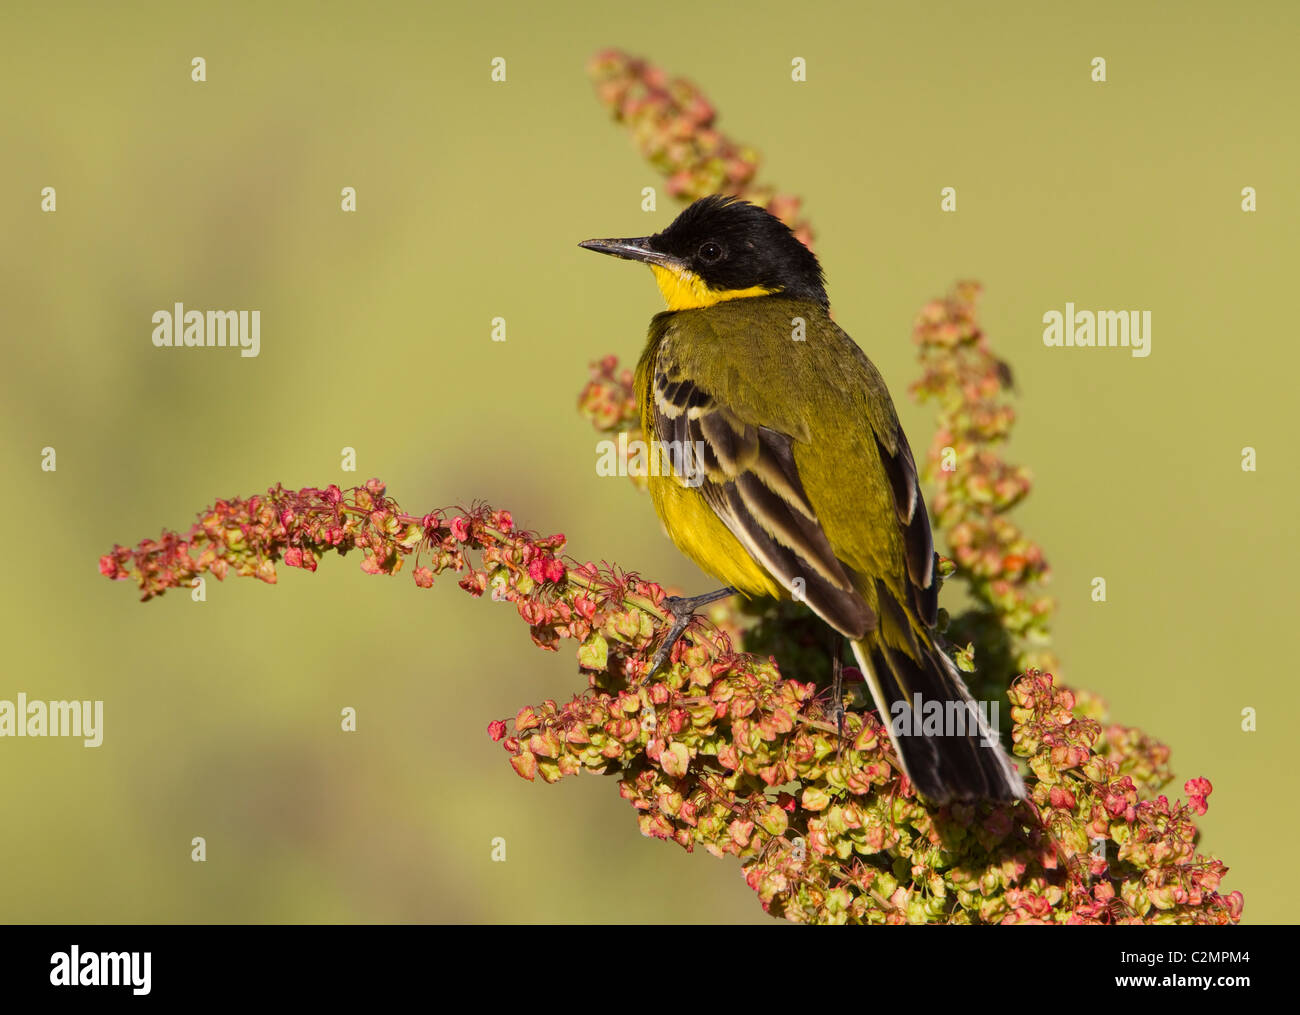 Black headed Wagtail Motacilla flava feldegg on Dock flower - Stock Image